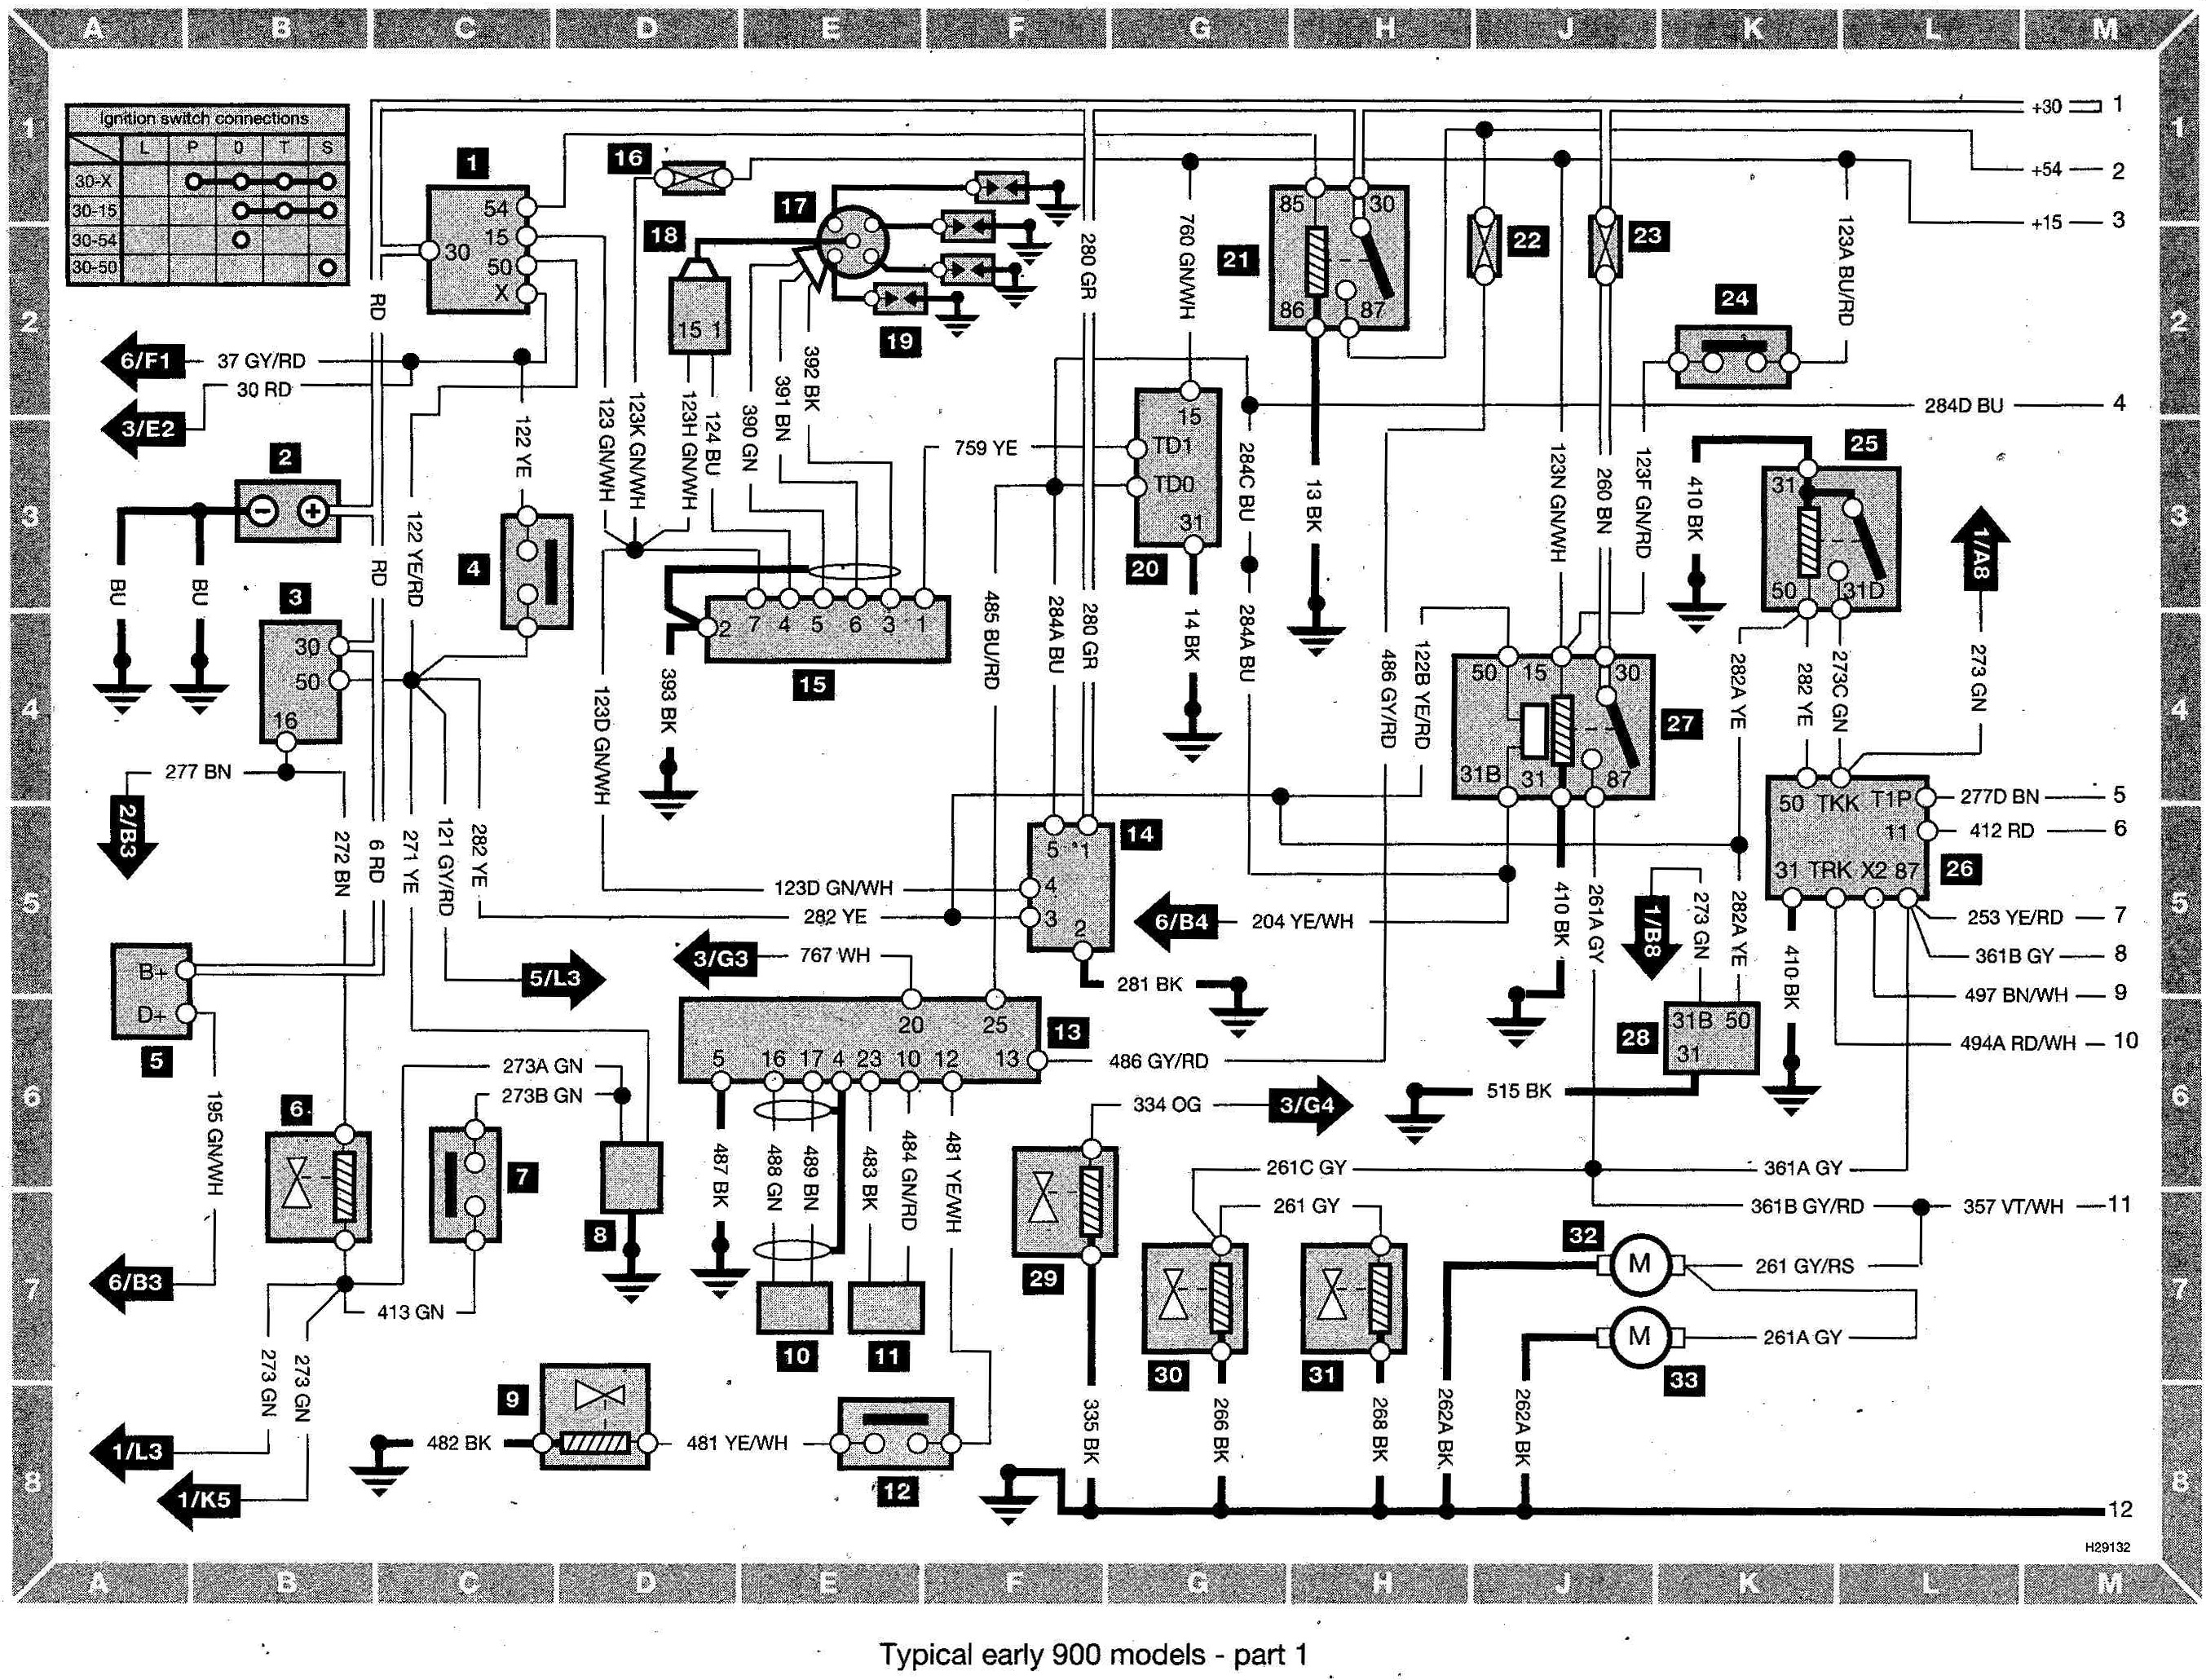 Saab 900 Wiring diagram (early models) part 1 saab 99 wiring diagram saab wiring diagrams instruction saab 9-5 wiring diagram pdf at creativeand.co